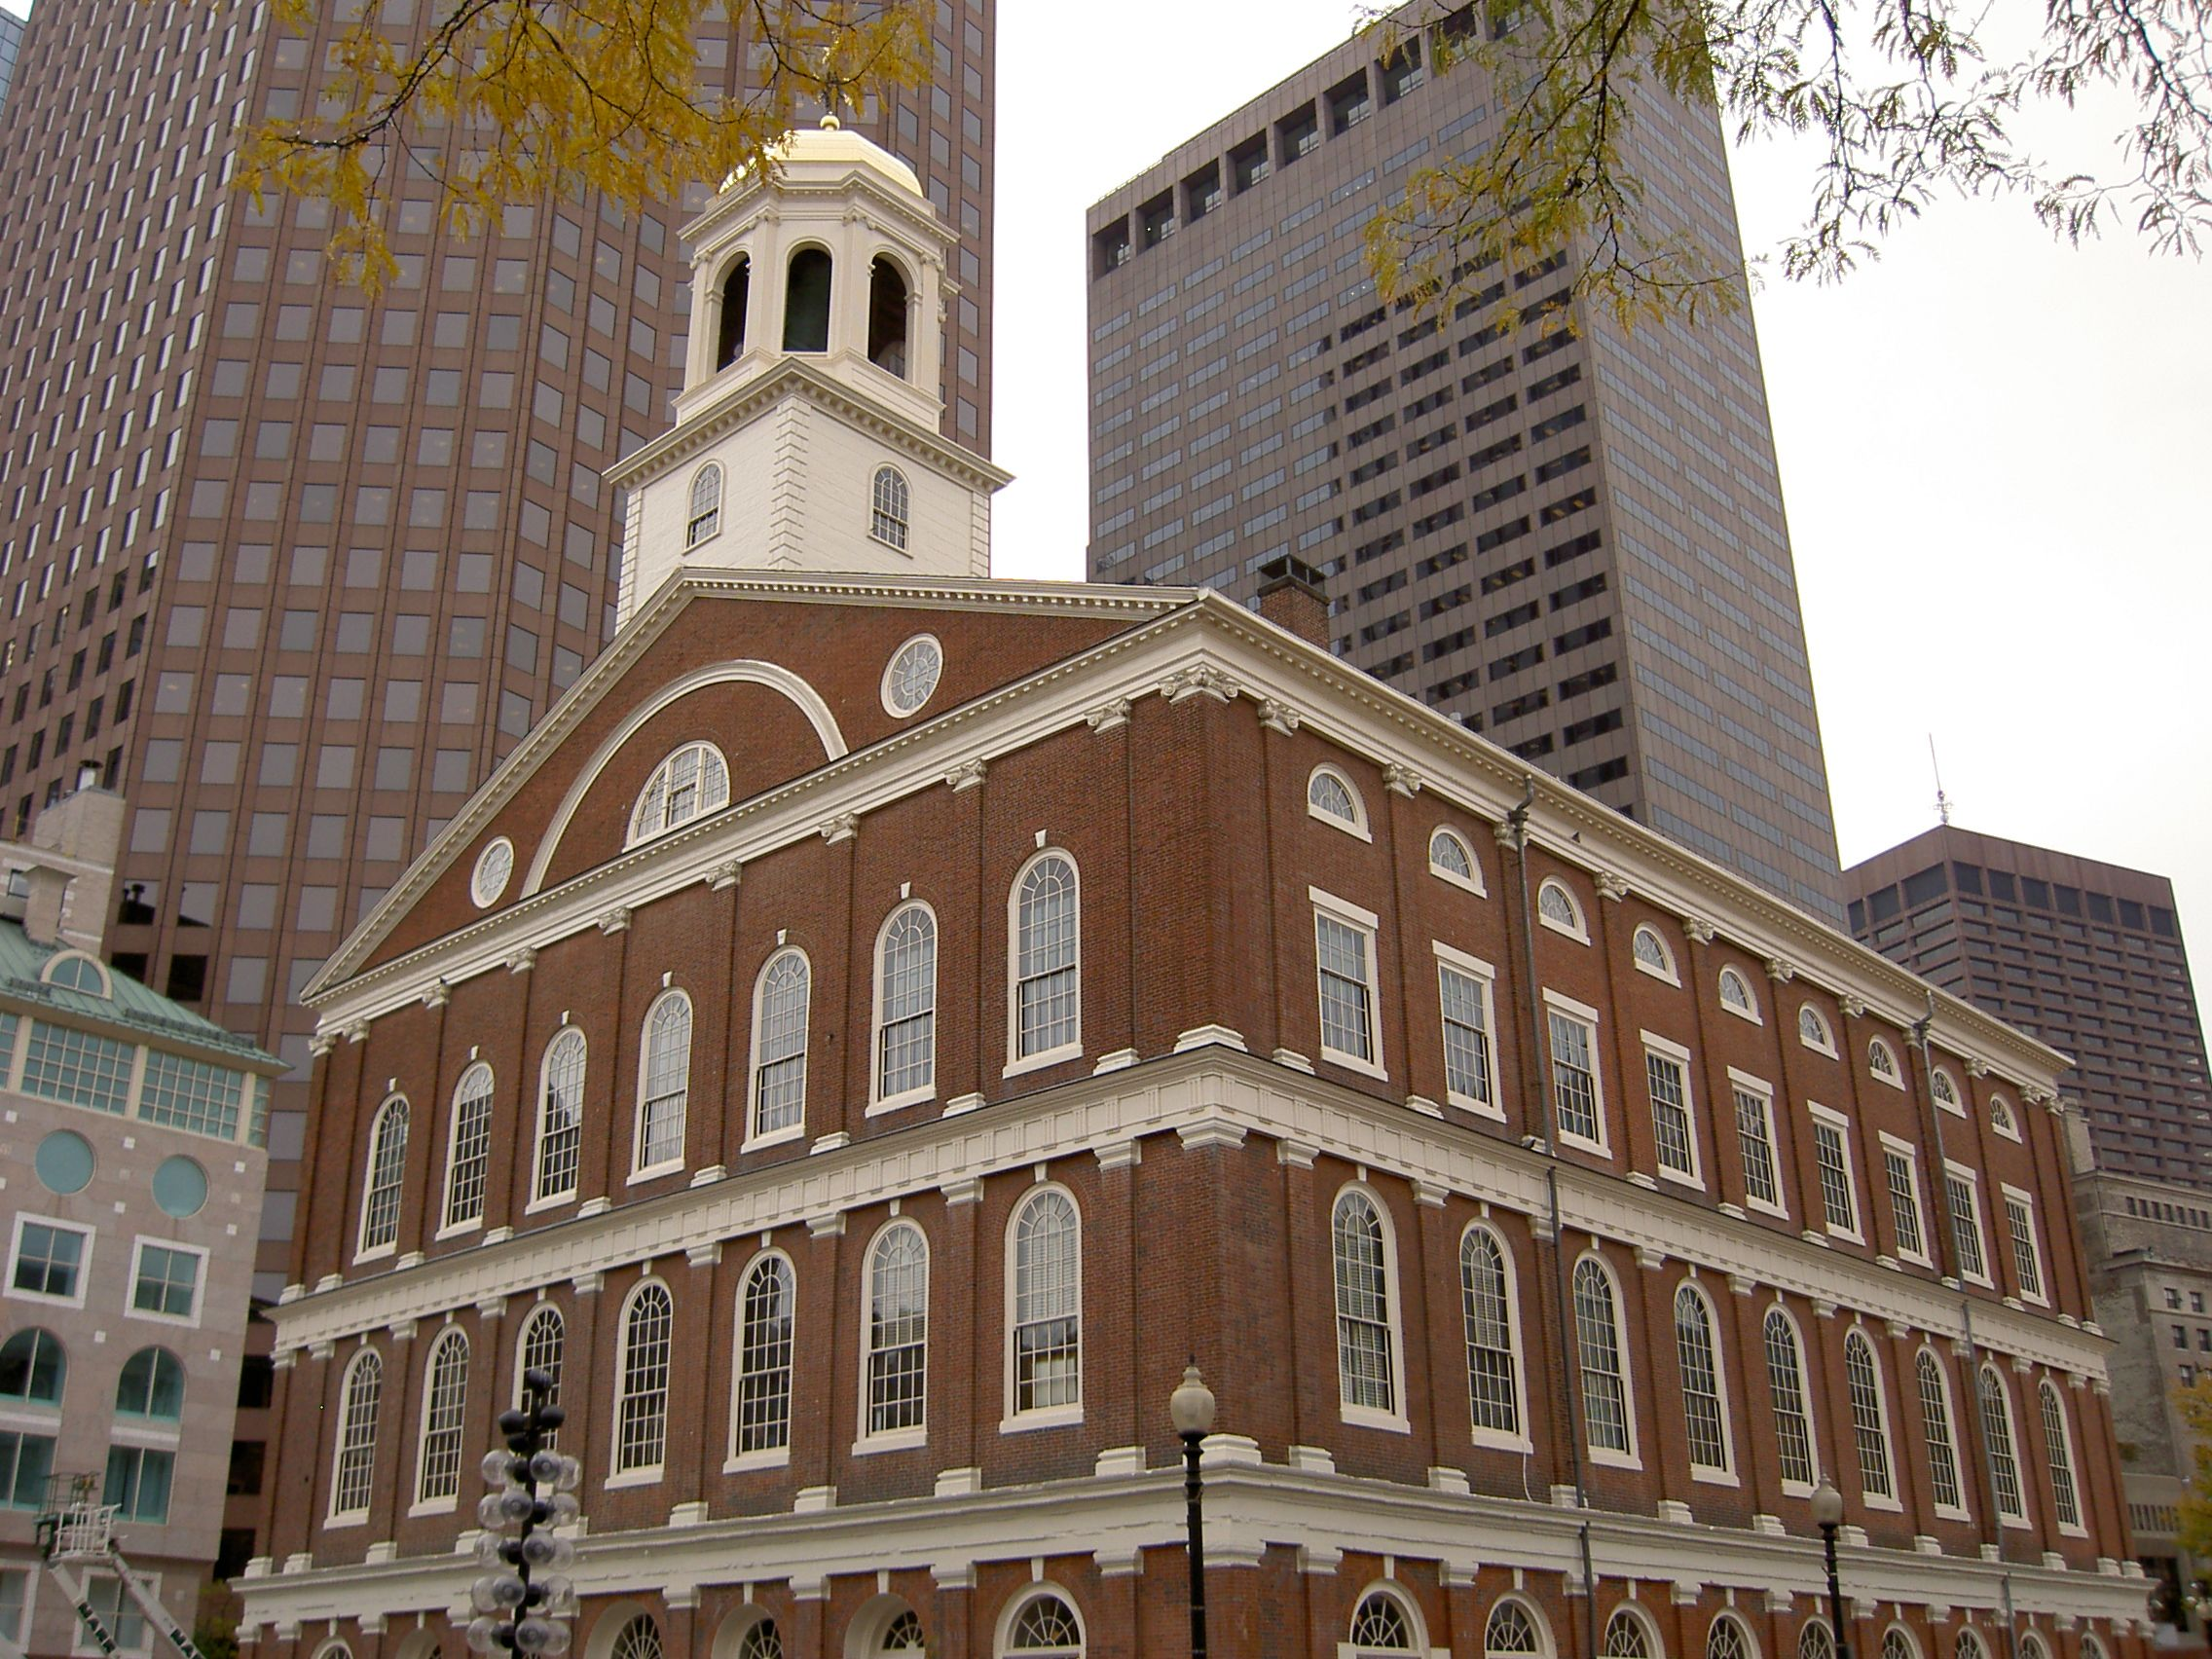 Prior to being repaired in 2007, the bell atop Faneuil Hall last rang using its clapper at the end of World War II, in 1945.